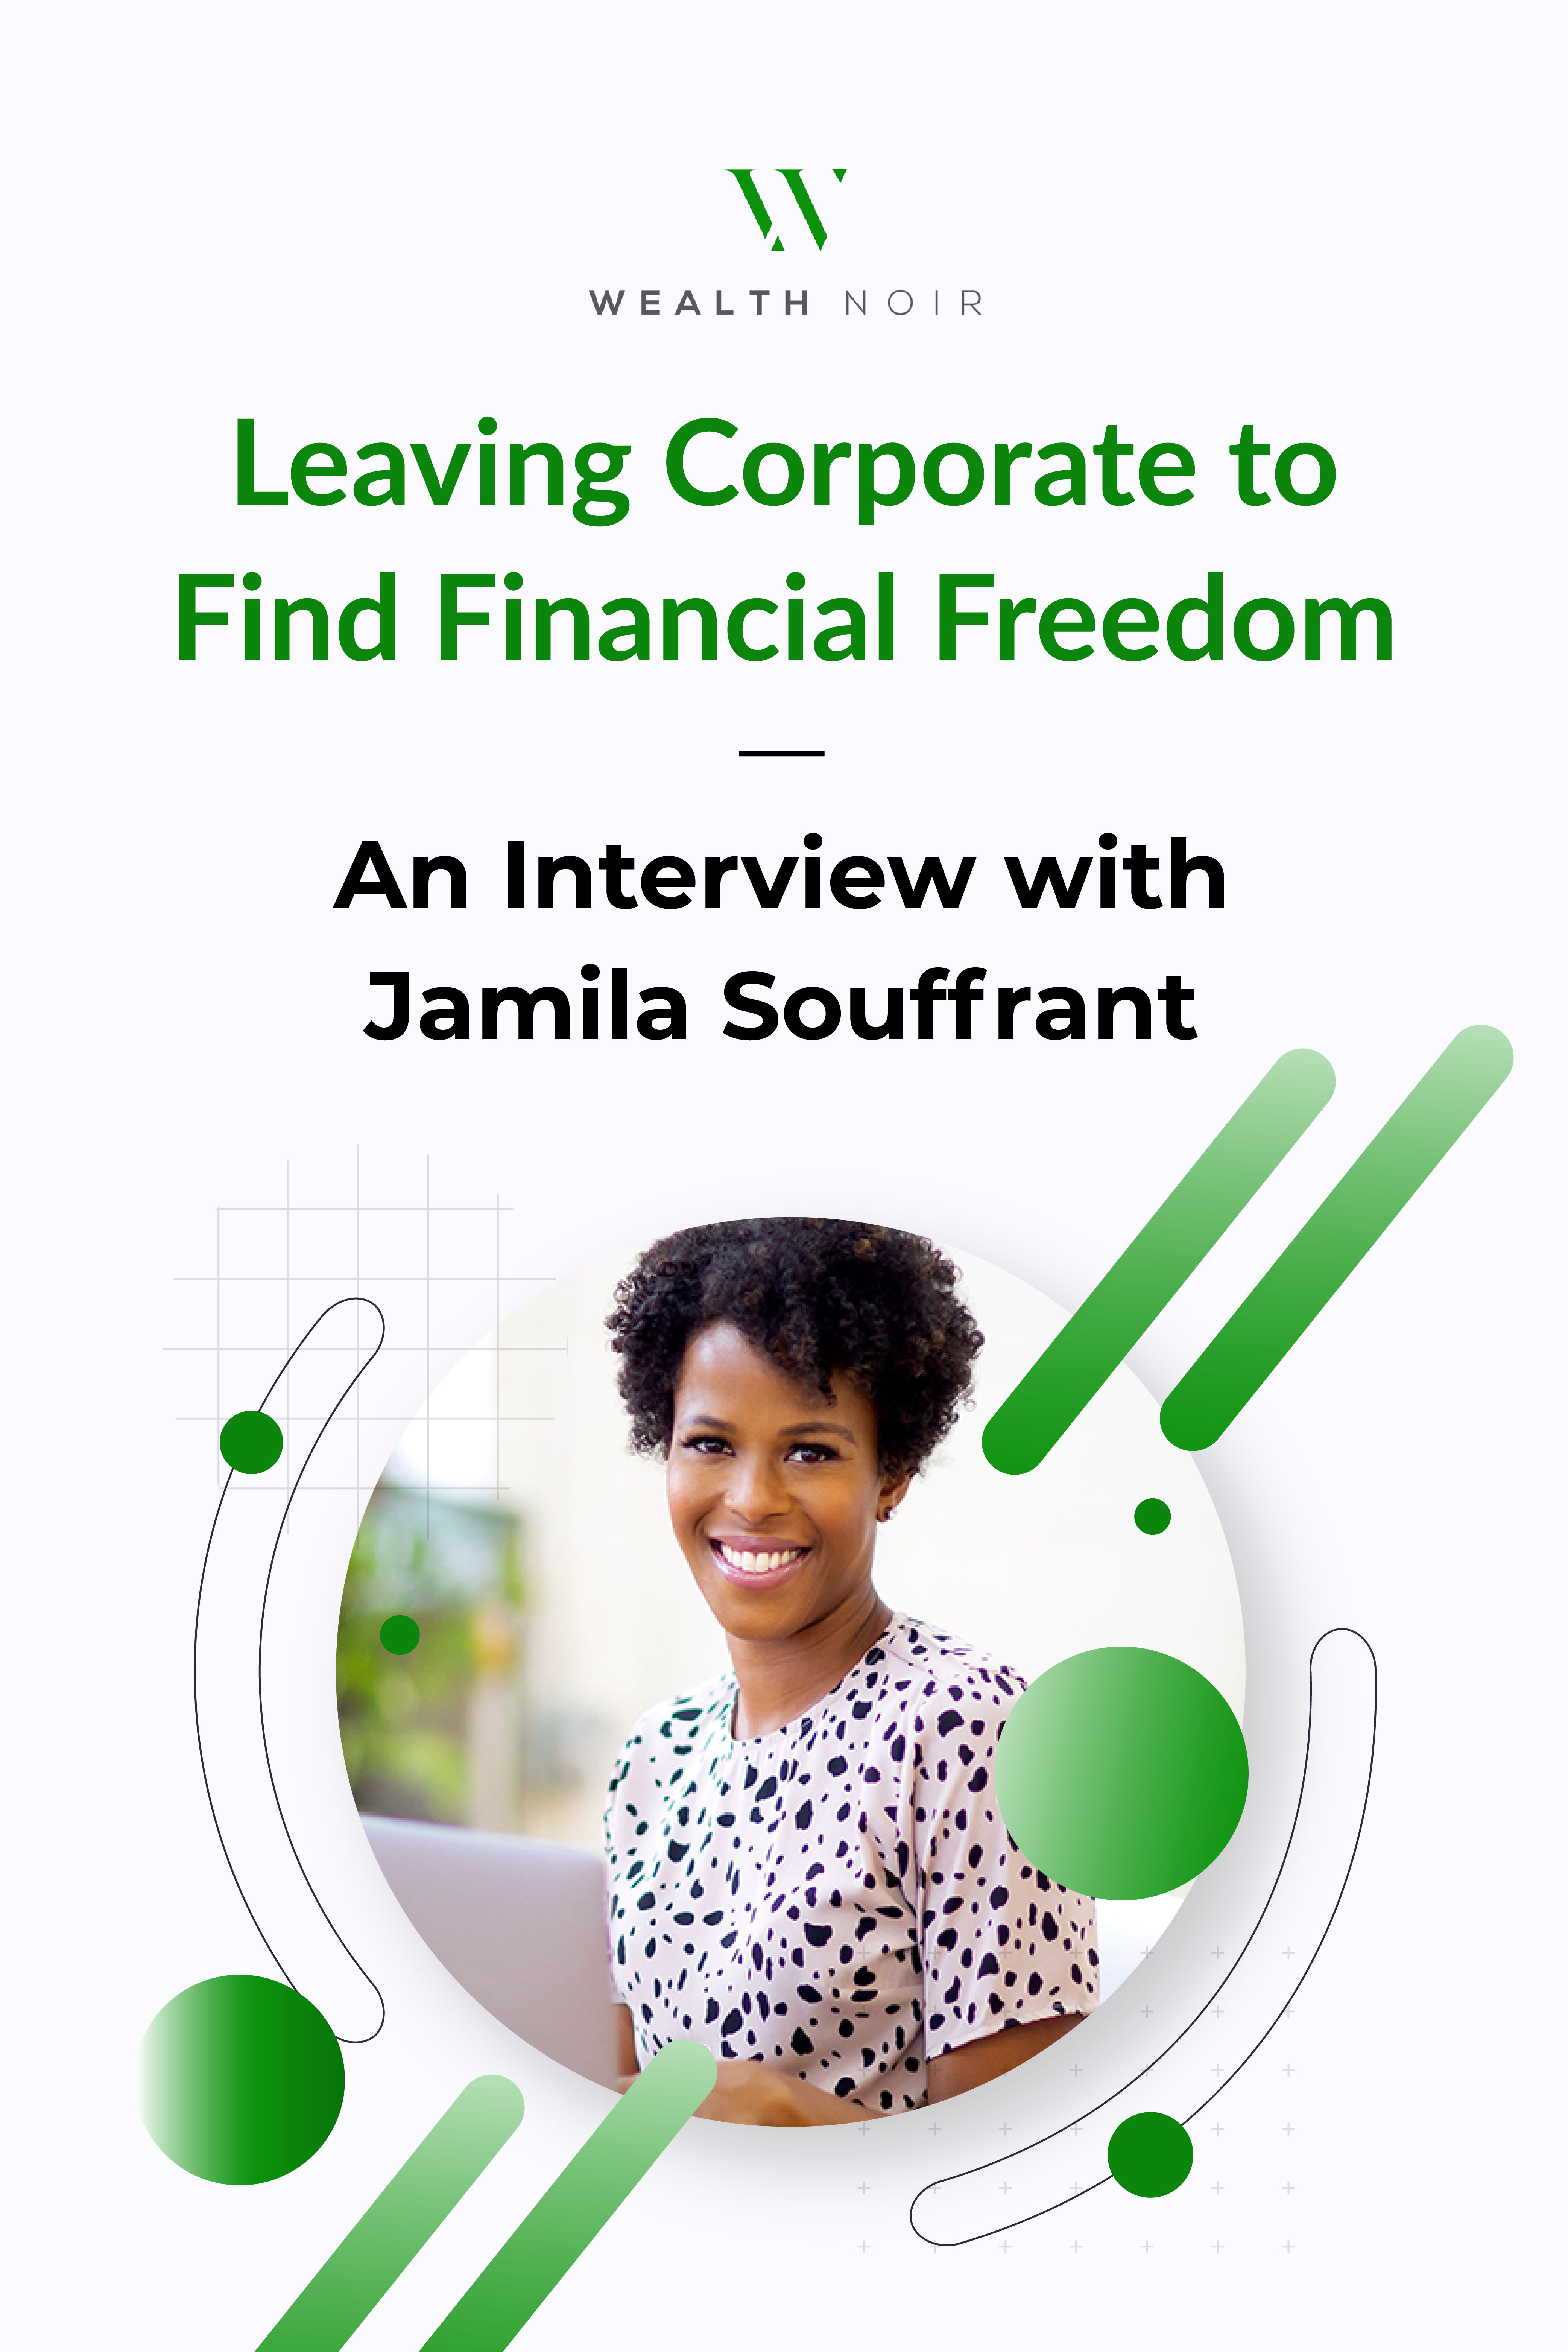 Leaving Corporate to Find Financial Freedom: An Interview with Jamila Souffrant